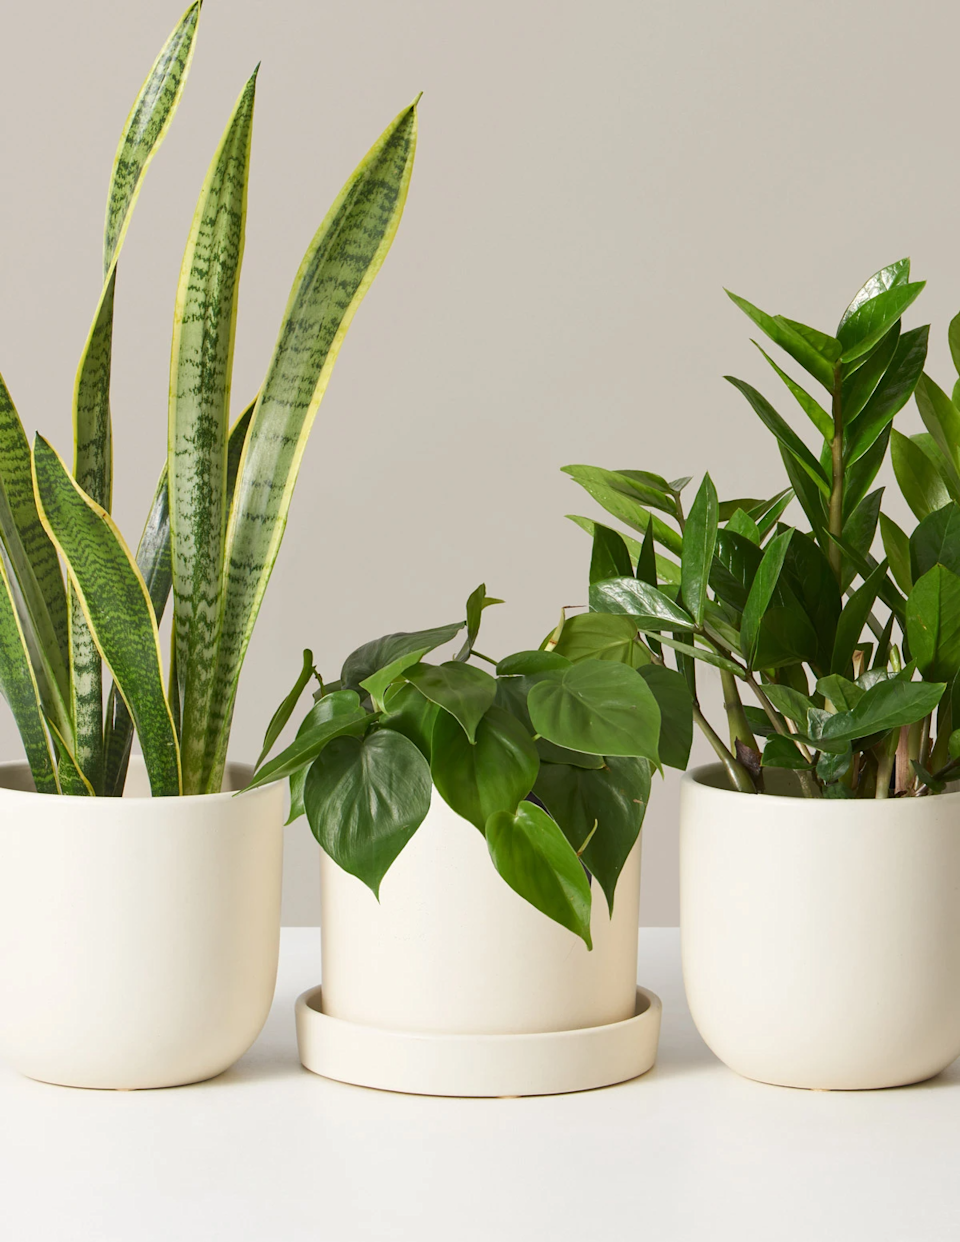 """<h3><h2>Monthly Plant Subscription</h2></h3><br><strong>Why She'll Love It</strong><br>If your mom has a major green thumb (or budding plant passion), then enrolling her in this reader-popular plant subscription is approved gifting gold.<br><br><strong>Care</strong><br>This recurring service delivers one new easy-care plant and ceramic planter, per month.<br><br><em>Shop</em><strong><em> <a href=""""https://www.thesill.com/products/beginner-potted-plants-monthly-subscription-box"""" rel=""""nofollow noopener"""" target=""""_blank"""" data-ylk=""""slk:The Sill"""" class=""""link rapid-noclick-resp"""">The Sill</a></em></strong><br><br><strong>The Sill</strong> Classic Plant Subscription, $, available at <a href=""""https://go.skimresources.com/?id=30283X879131&url=https%3A%2F%2Fwww.thesill.com%2Fproducts%2Fclassic-subscription-box"""" rel=""""nofollow noopener"""" target=""""_blank"""" data-ylk=""""slk:The Sill"""" class=""""link rapid-noclick-resp"""">The Sill</a>"""